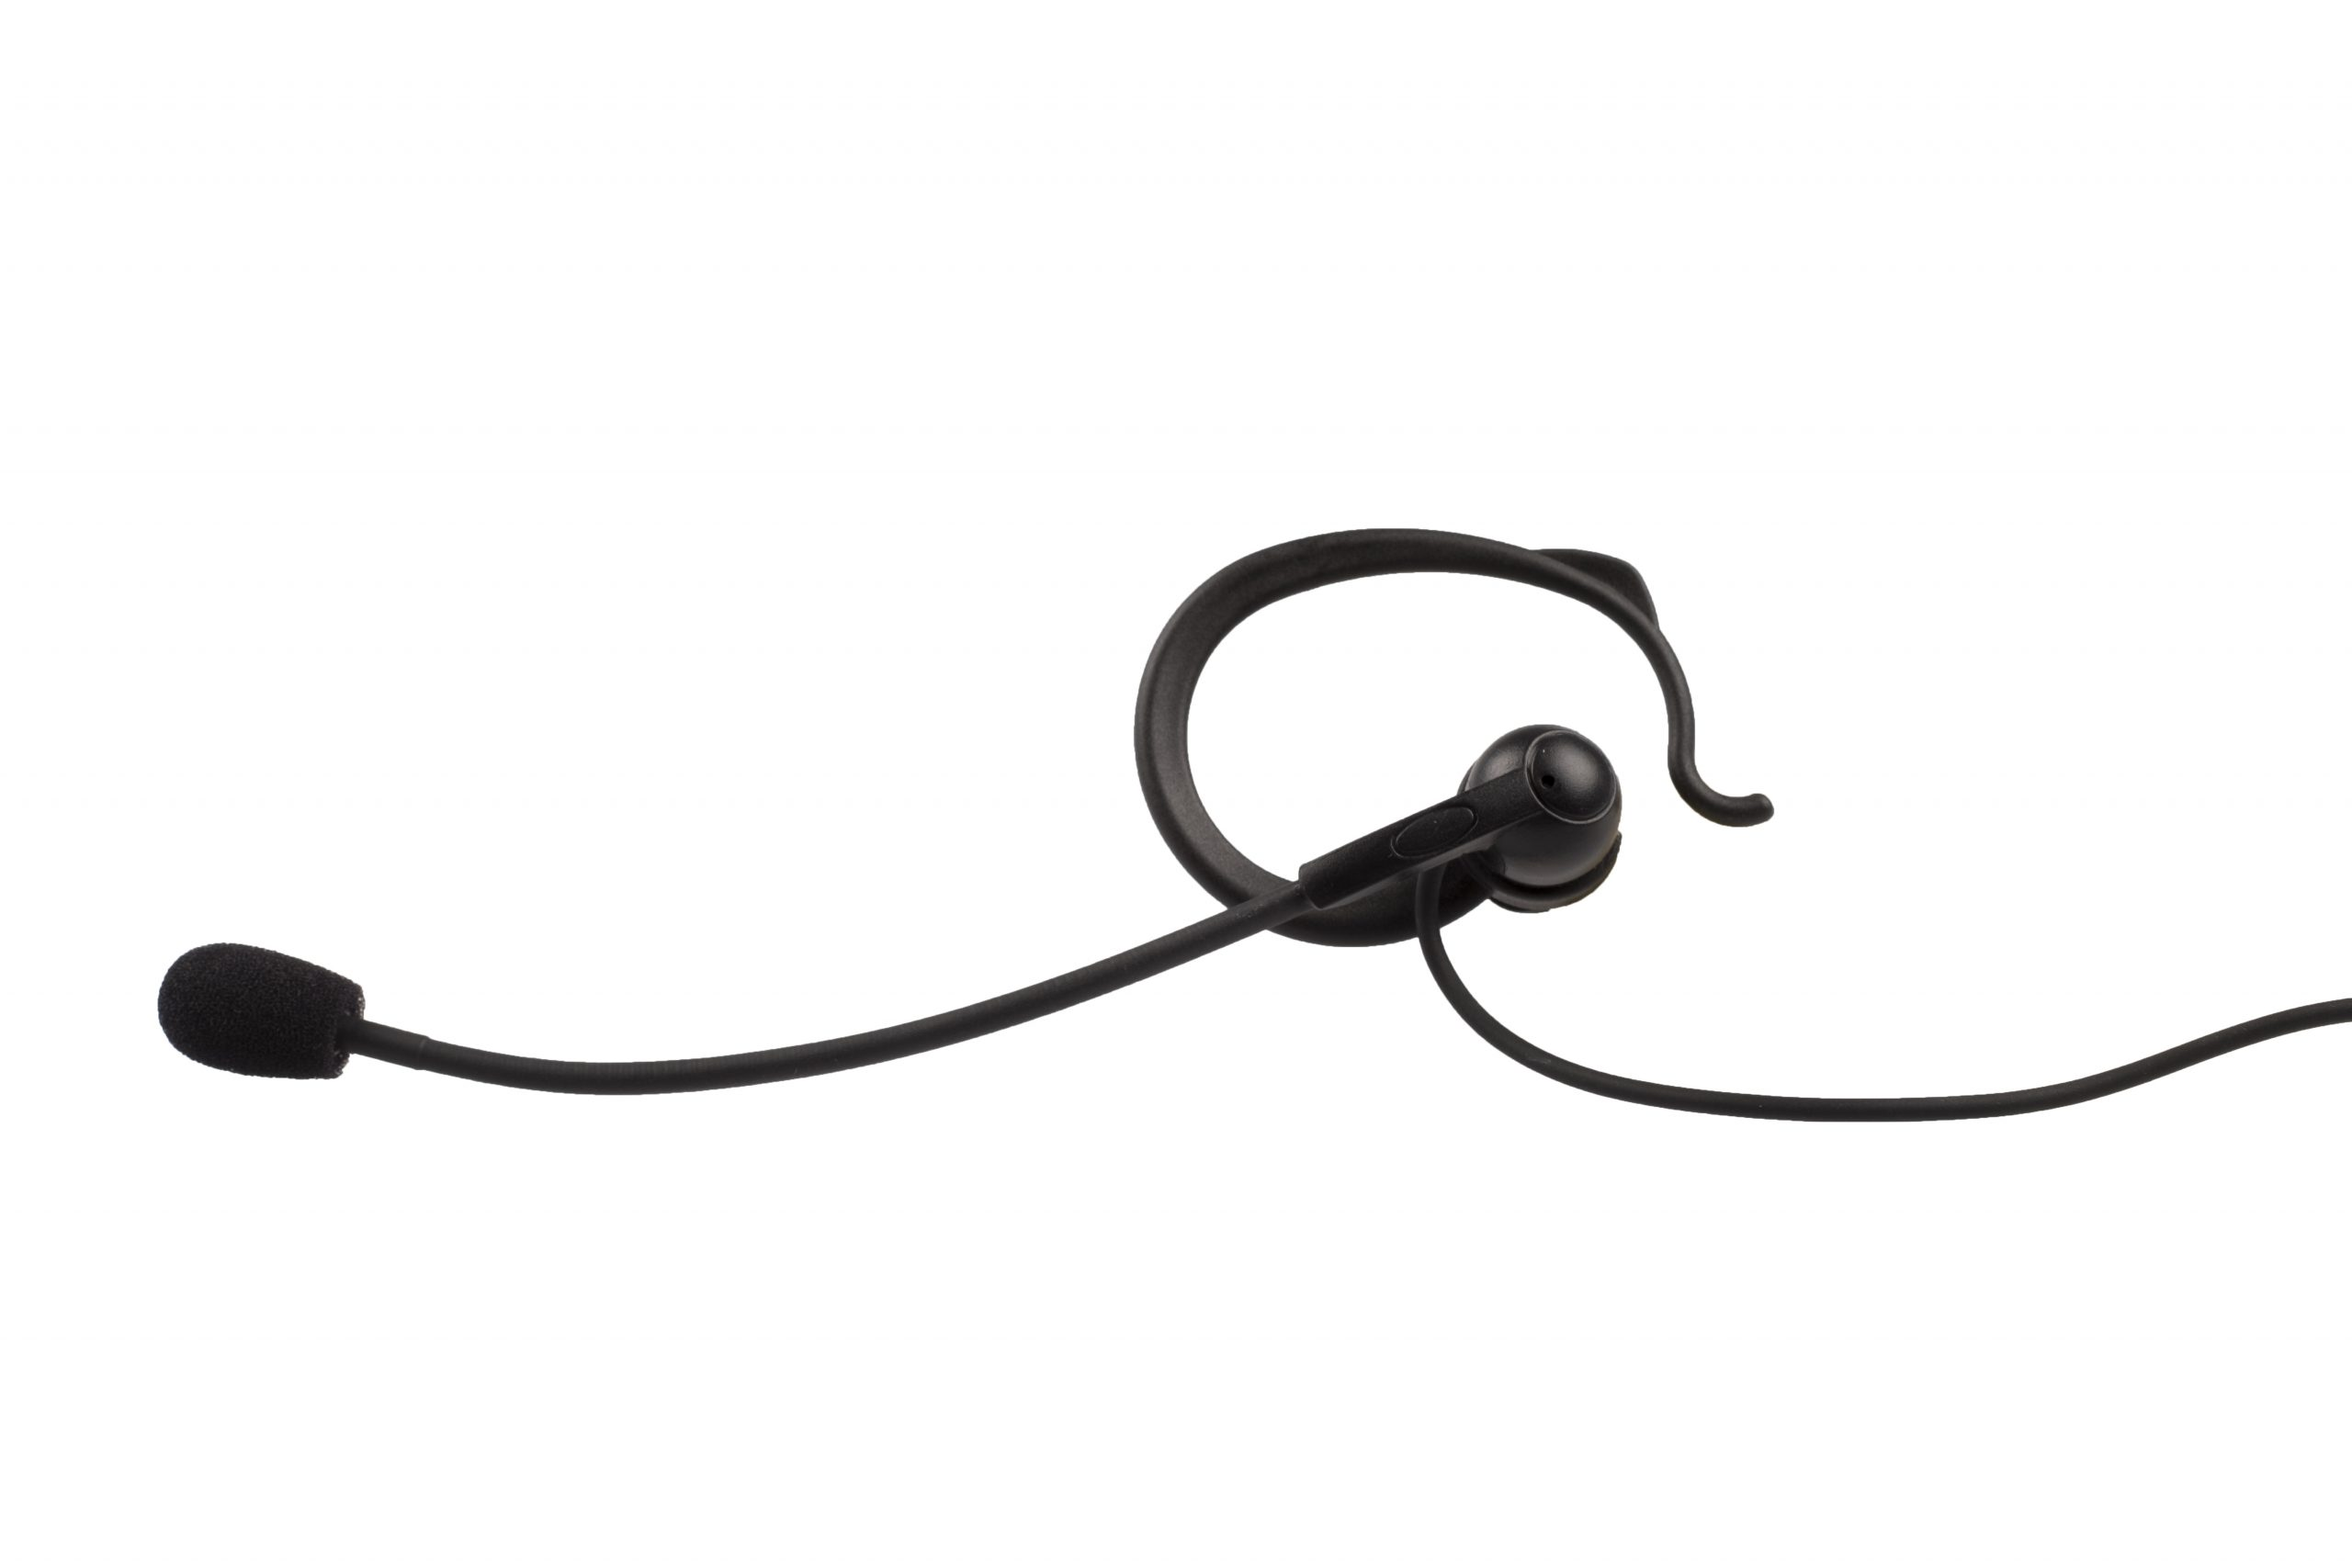 tour headset for factories headset with noise cancelling